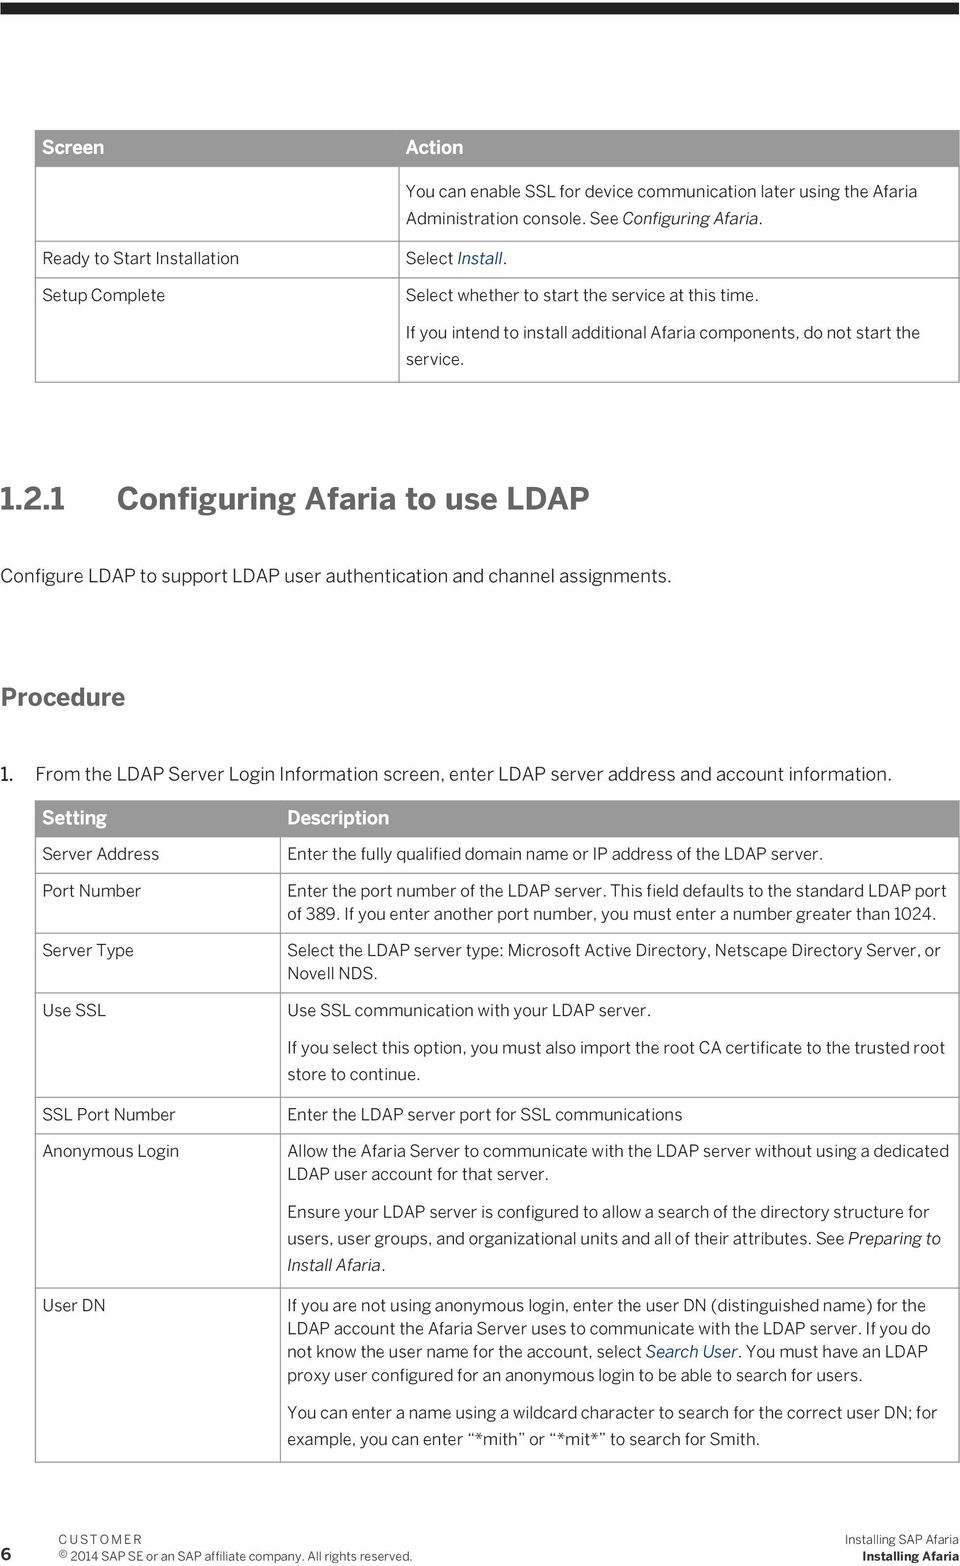 1 Configuring Afaria to use LDAP Configure LDAP to support LDAP user authentication and channel assignments. 1.